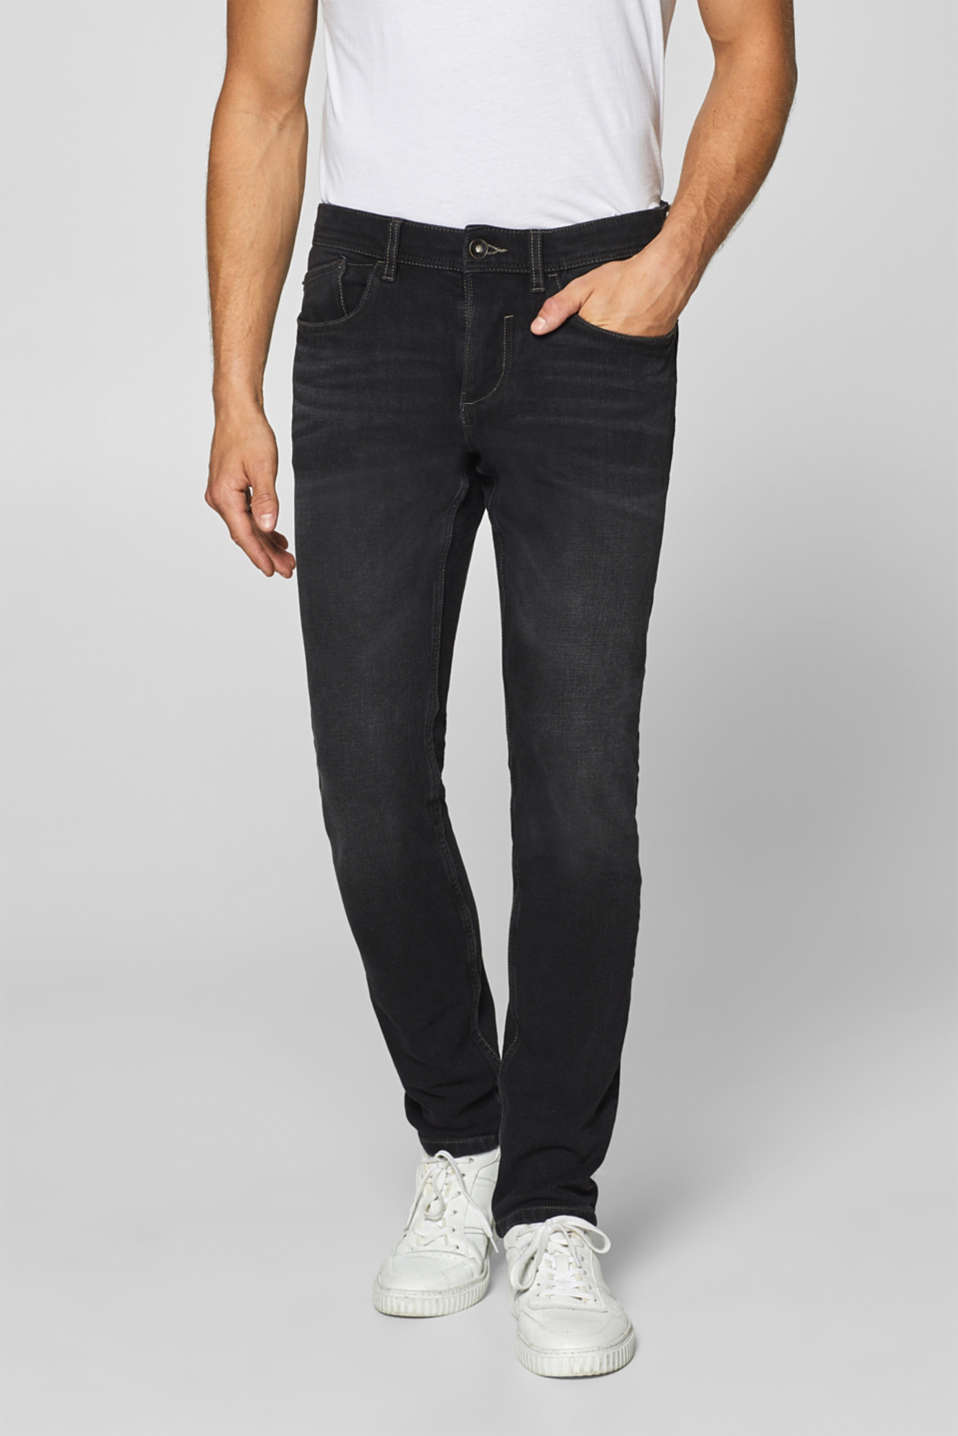 Esprit - Super stretch jeans with a garment wash